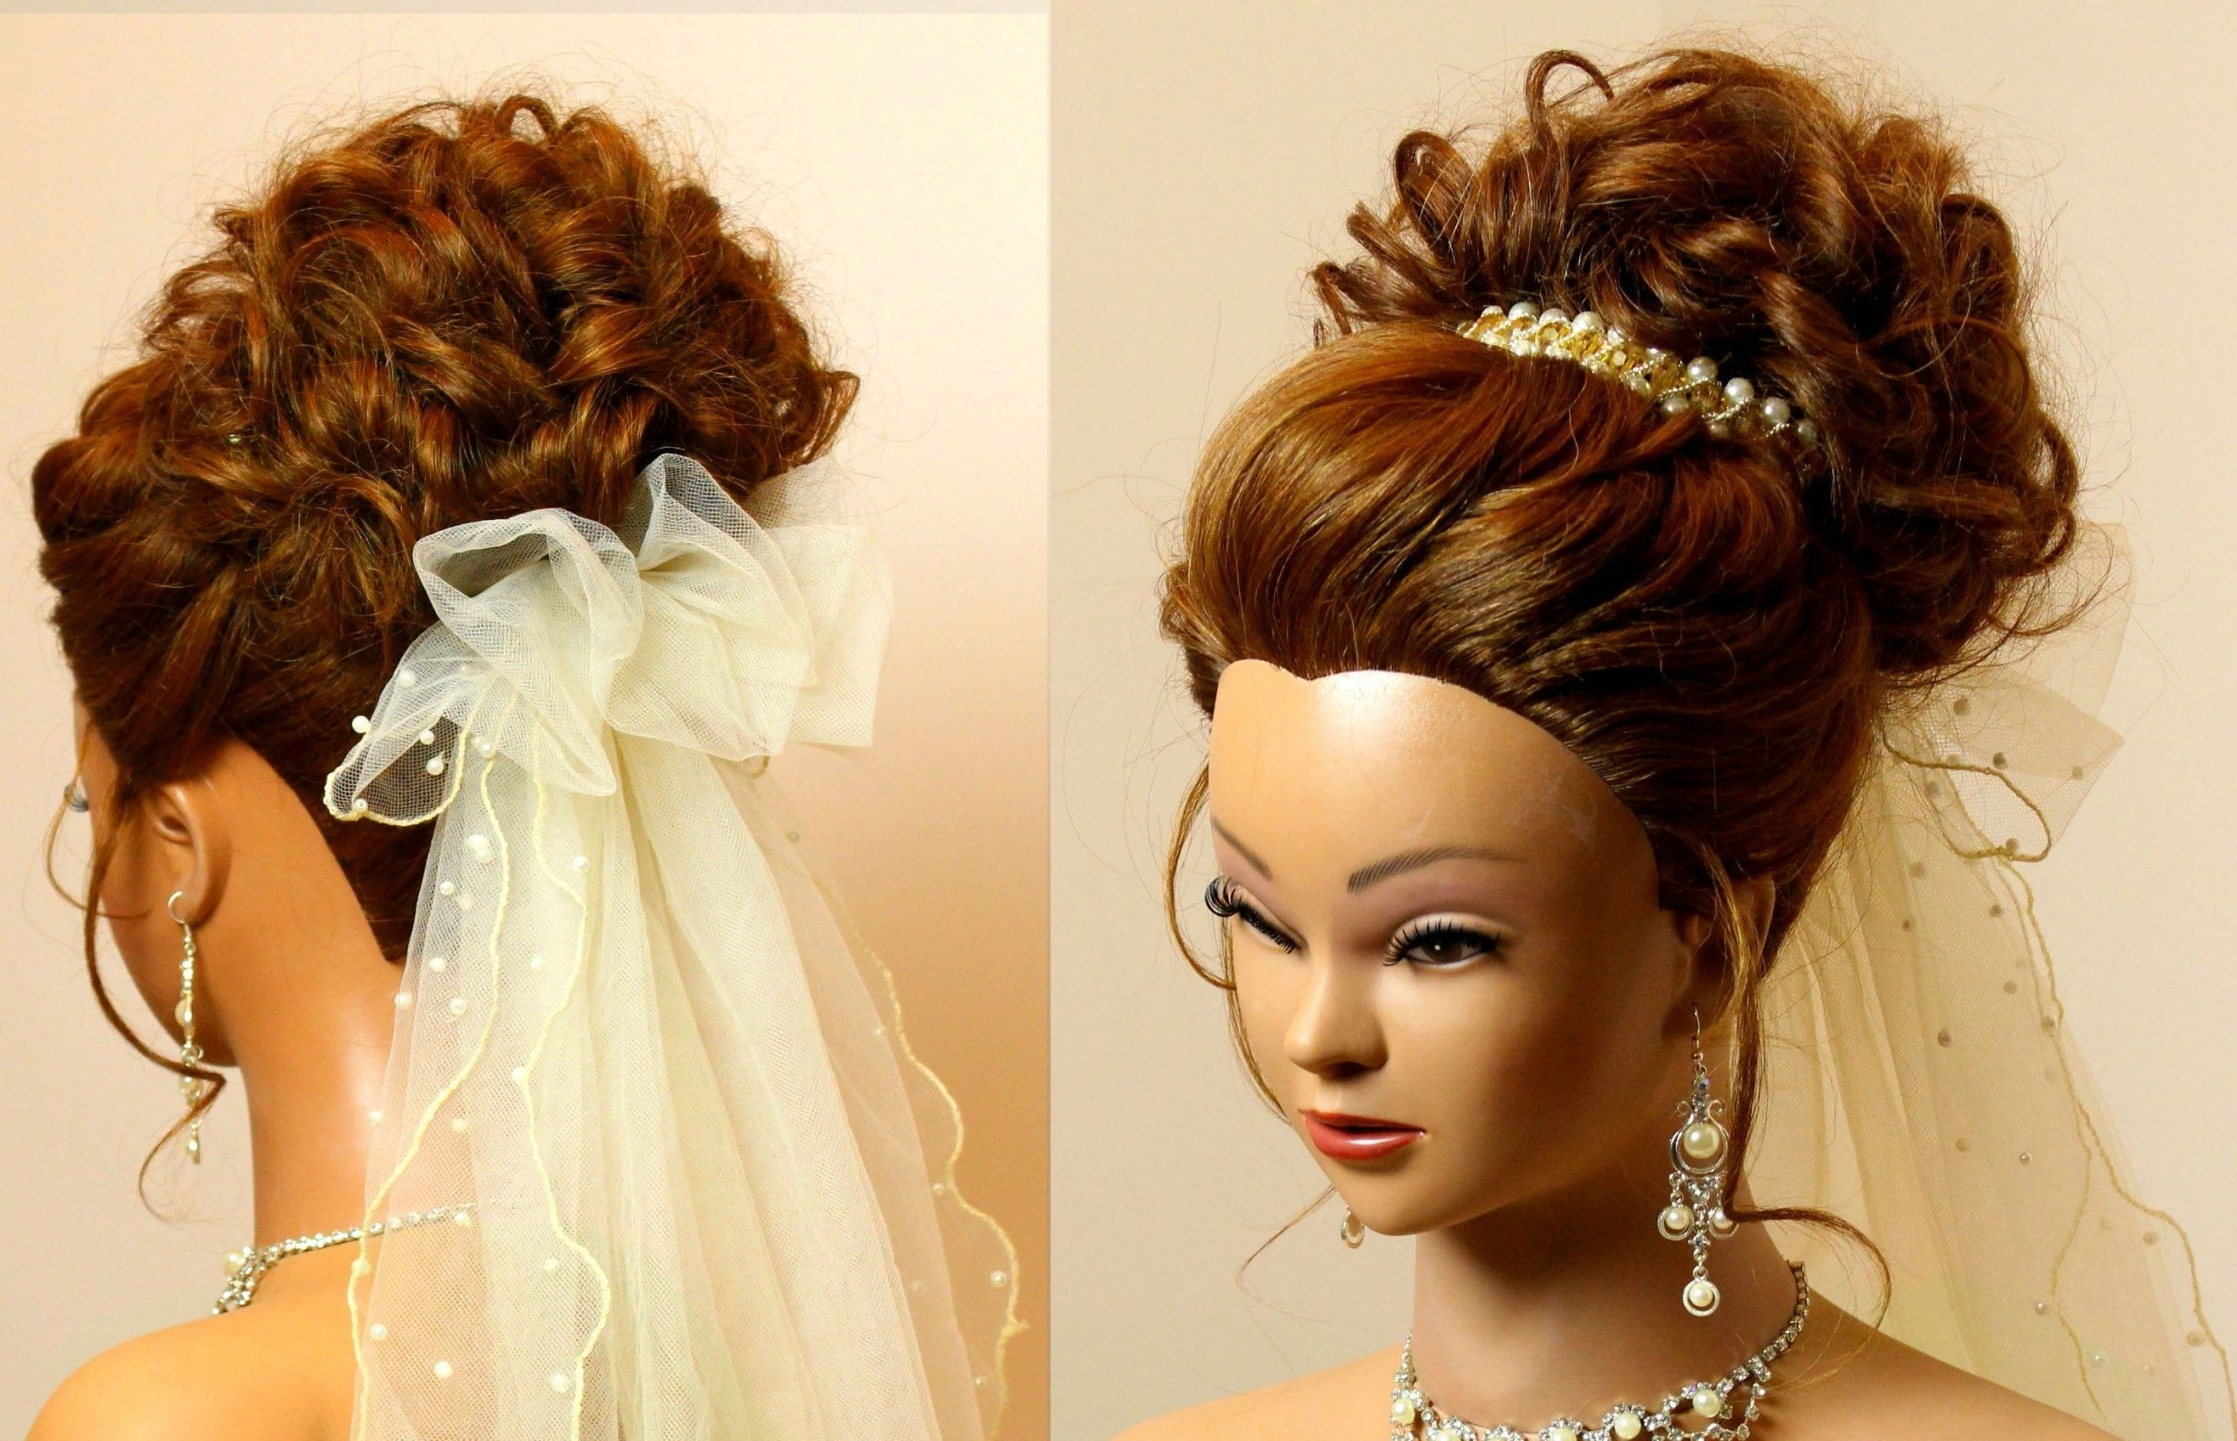 35 Romantic Wedding Updos For Medium Hair: 15 Best Collection Of Romantic Bridal Hairstyles For